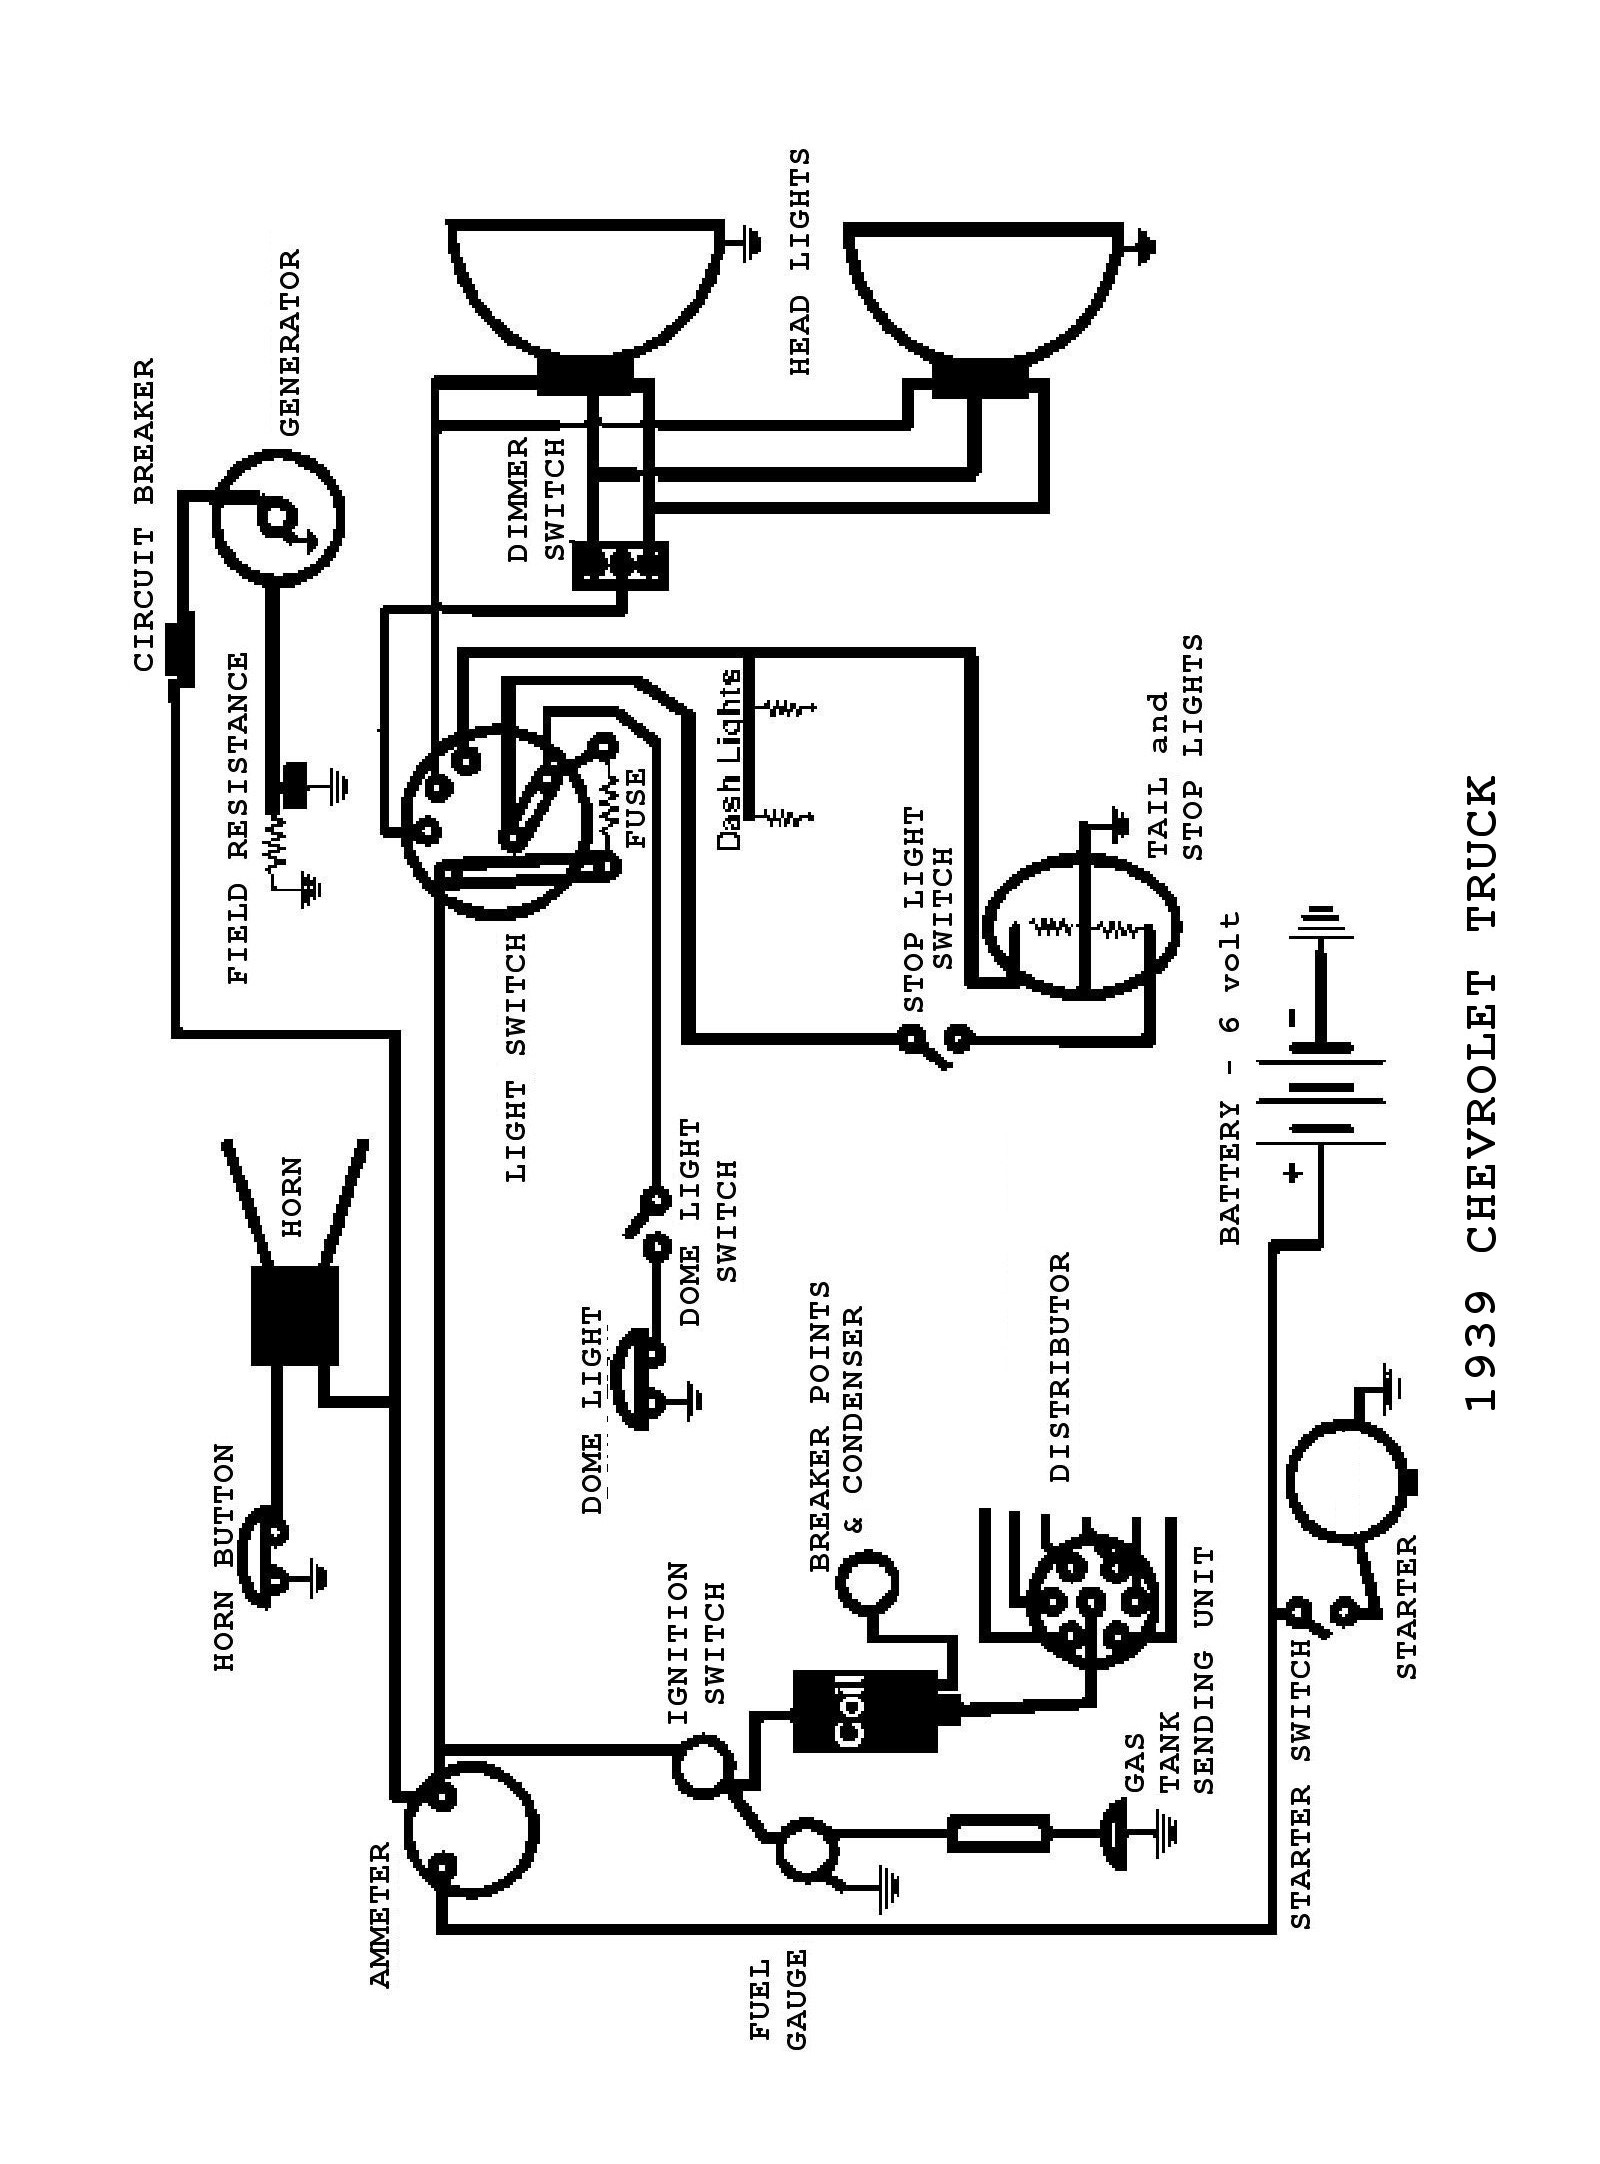 1950 ford turn signal wiring diagram as well 1957 chevy headlight